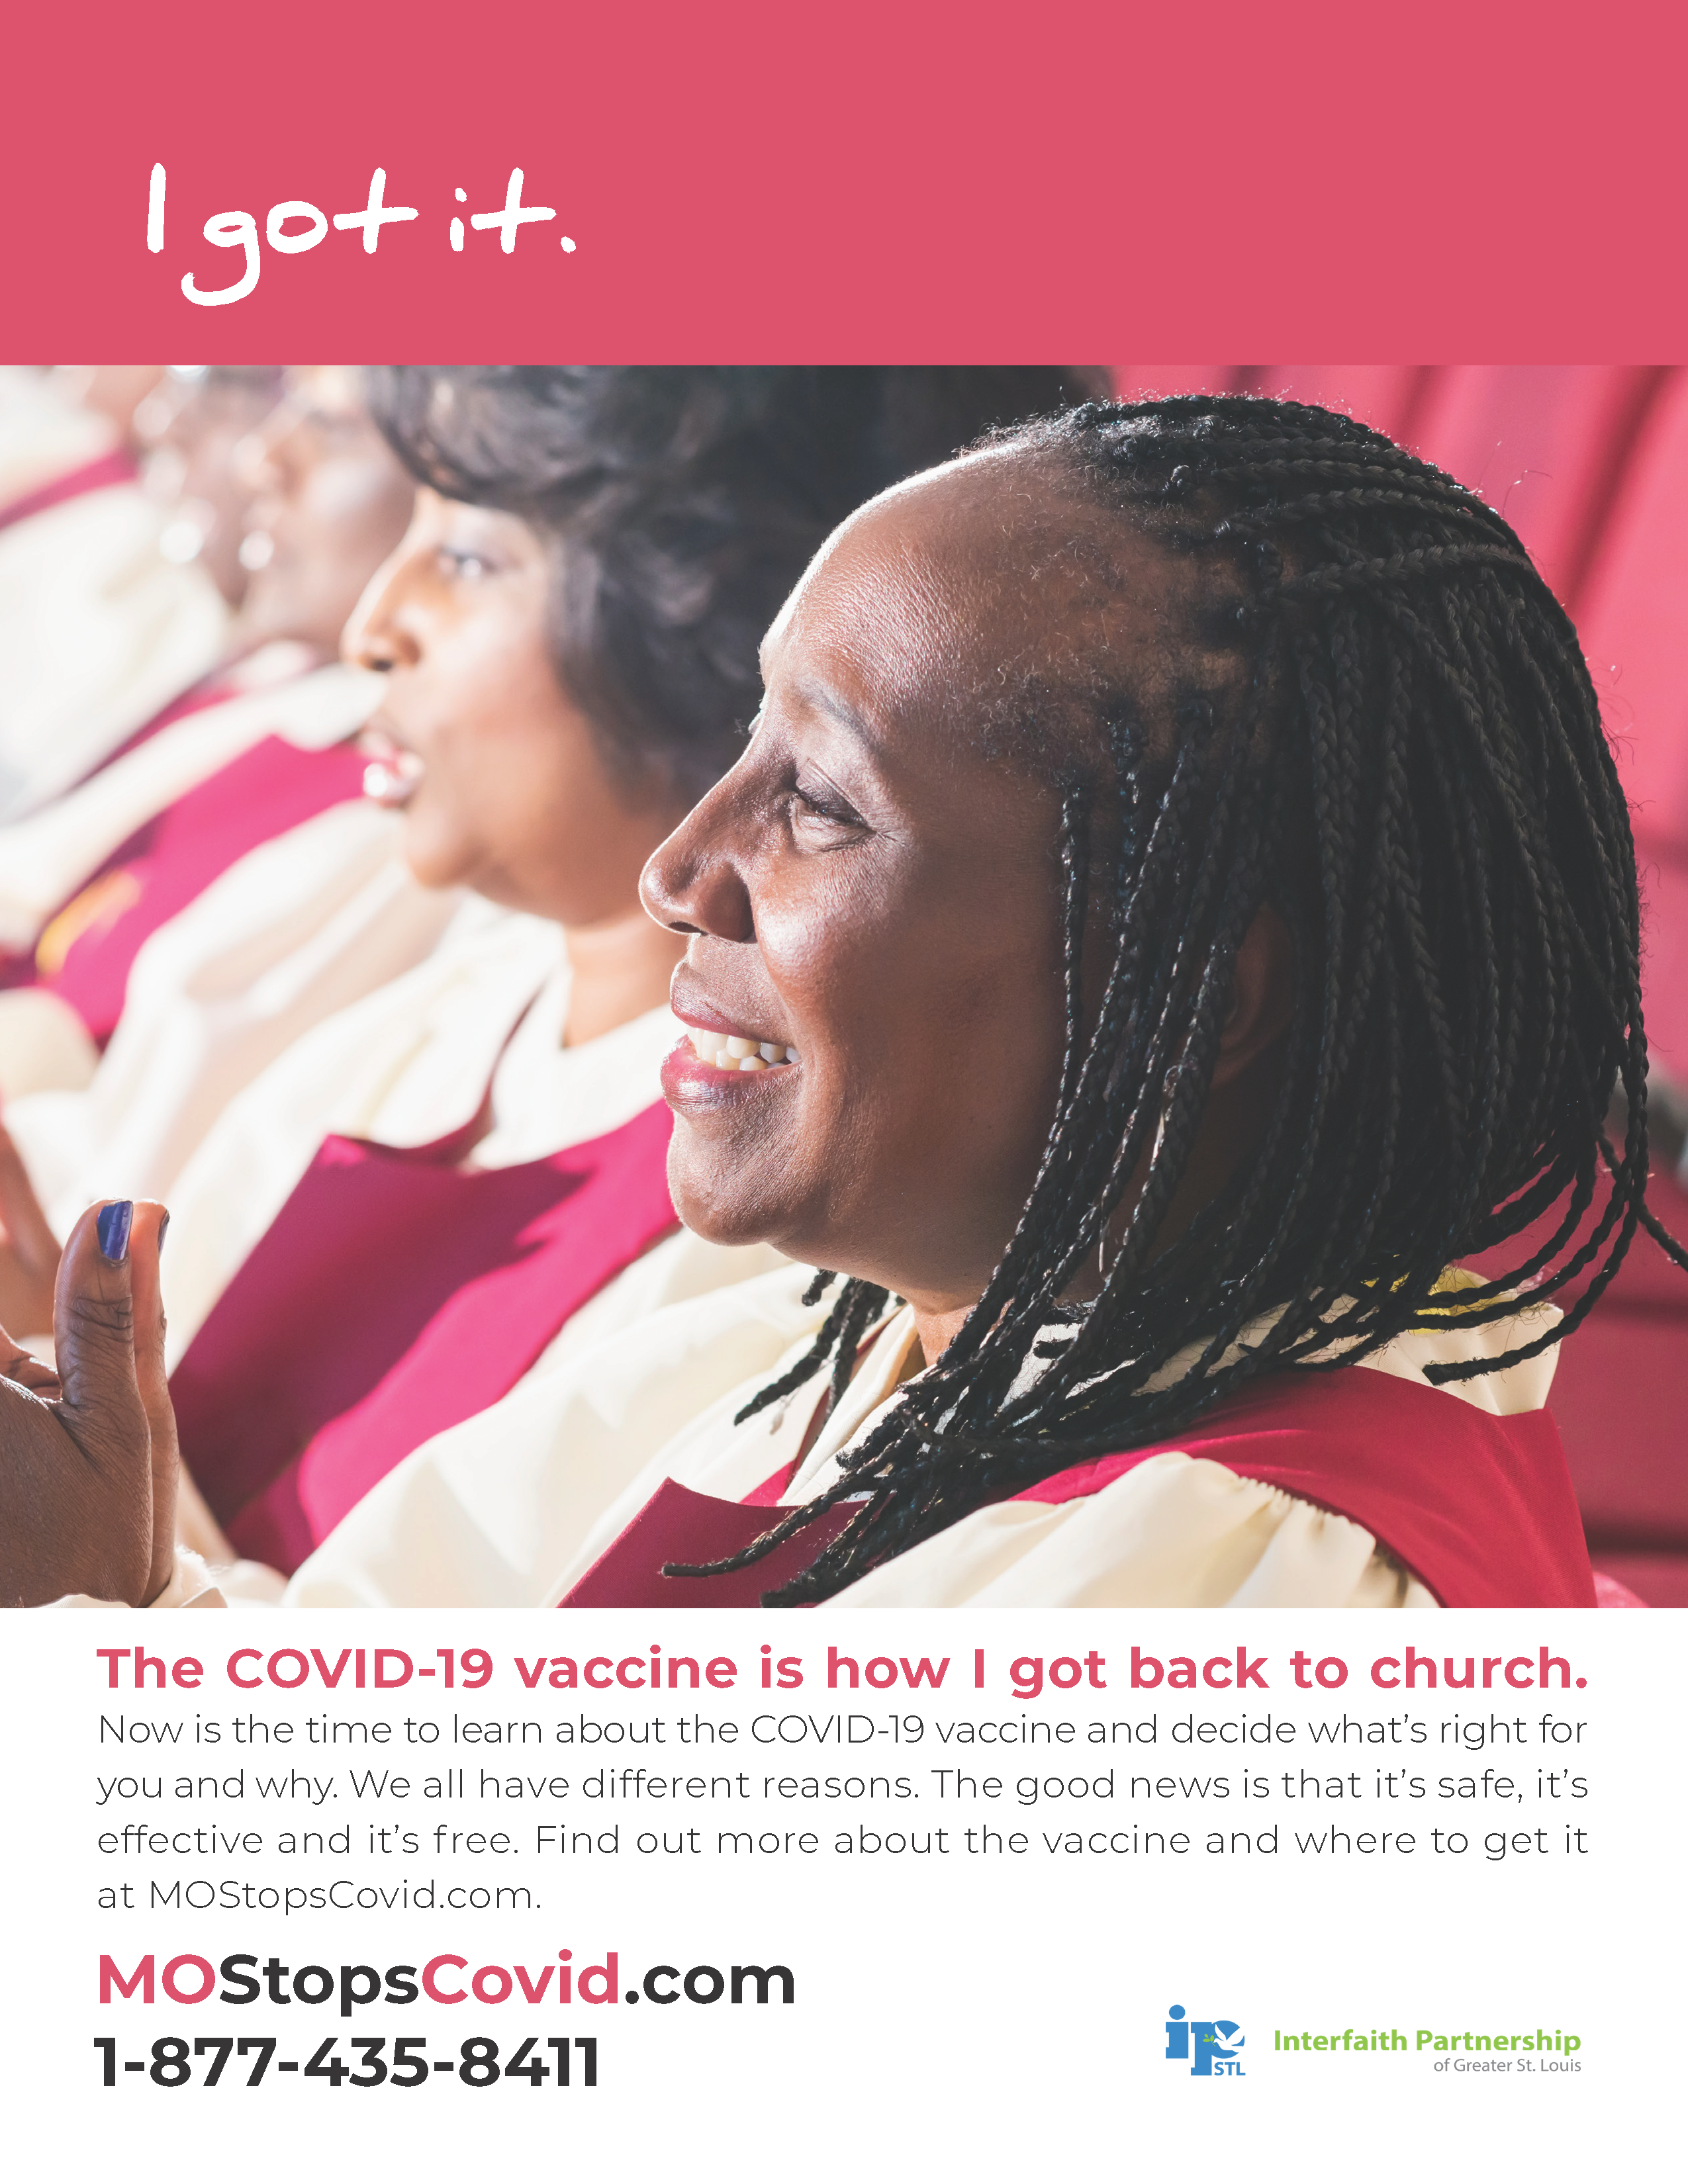 """Photograph of a middle-aged woman smiling while singing in a church choir. Above, text reads """"I got it"""" over red border. Below, the text reads: """"The COVID-19 vaccine is how I got back to church> Now is the time to learn about the COVID-19 vaccine and decide what's right for you and why. We all have different reasons. The good news is that it's safe, it's effective and it's free. Find out more about the vaccine and where to get it at MOStopsCovid.com or by calling 1-877-435-8411."""